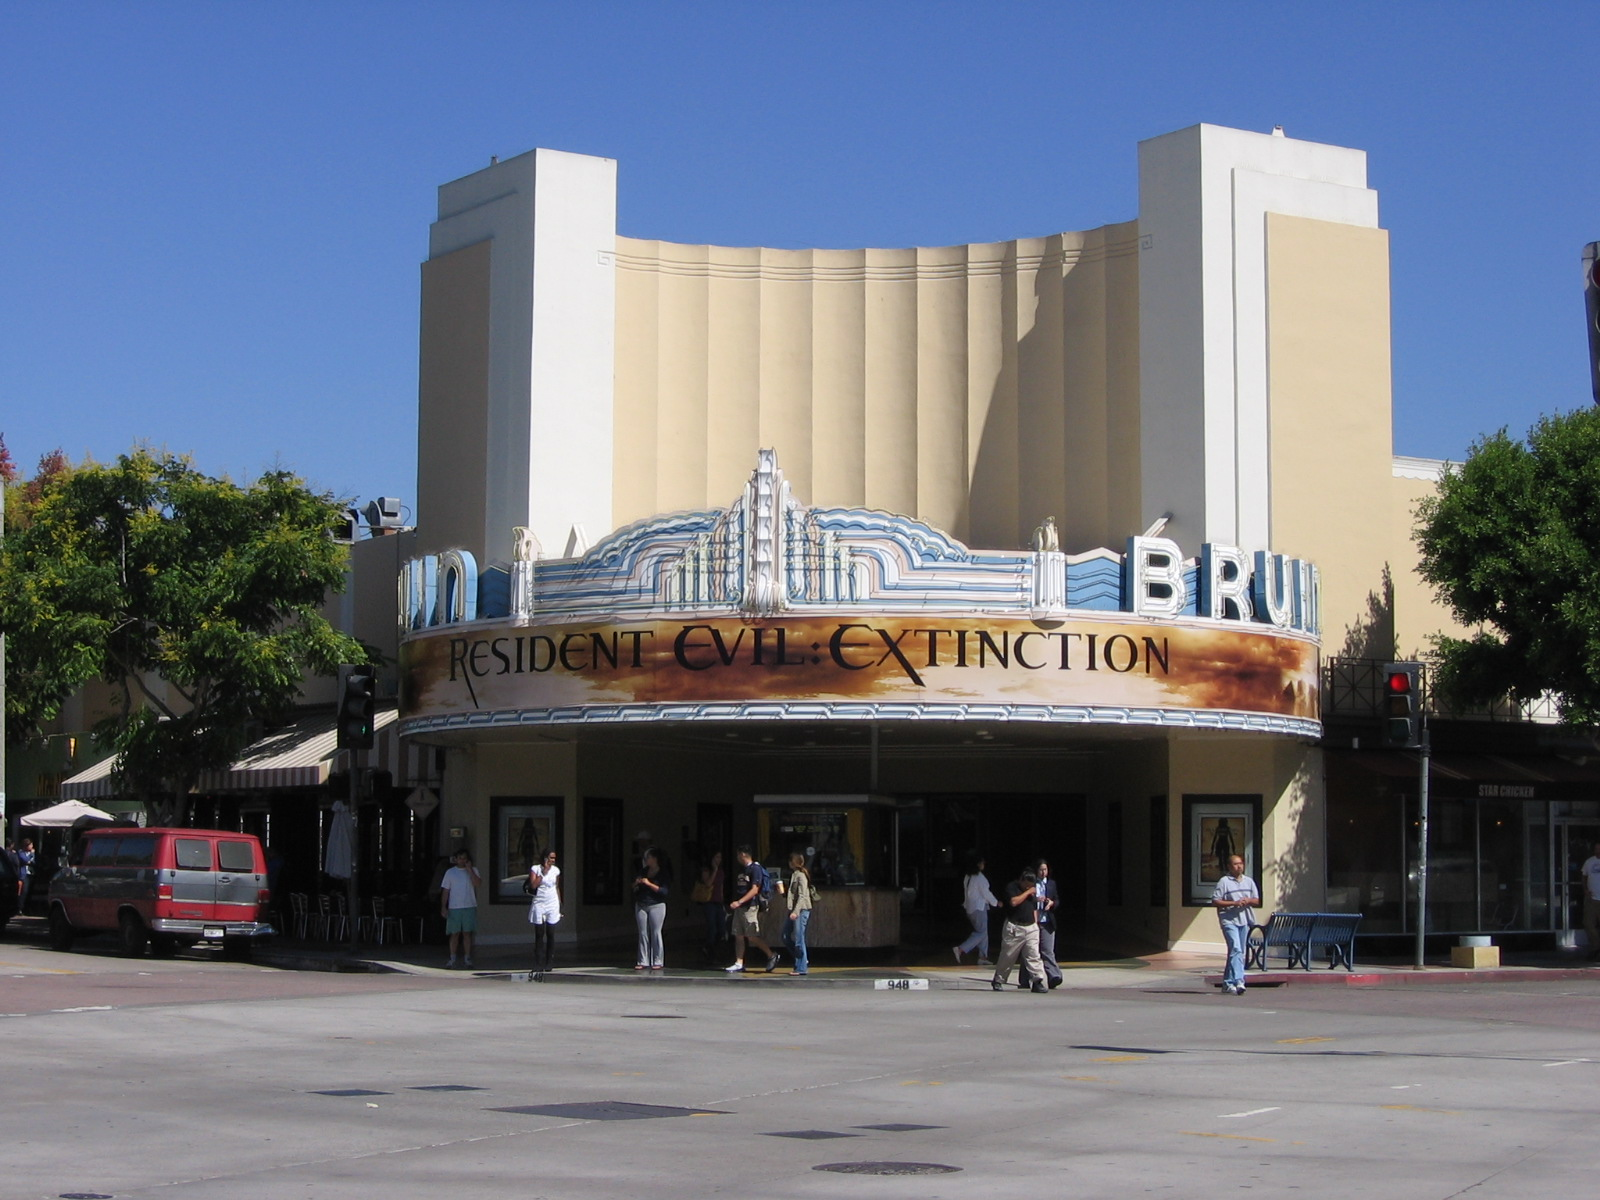 Los Angeles Theatres Westwood And Brentwood Theatres An Overview